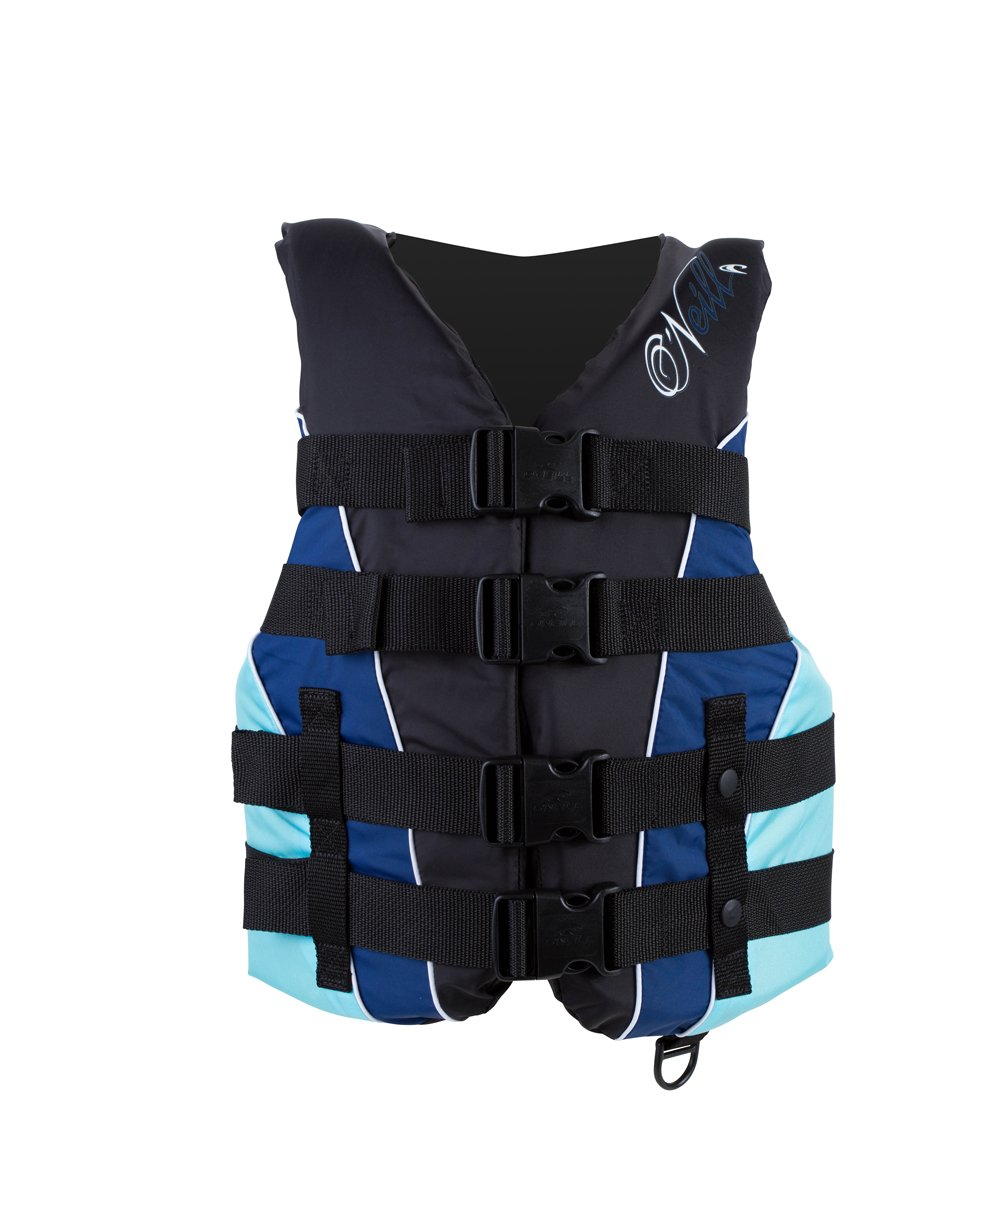 O'Neill Wetsuits Women's Superlite USCGA Vest  (Black/Navy/Turquoise, Large) by O'Neill Wetsuits